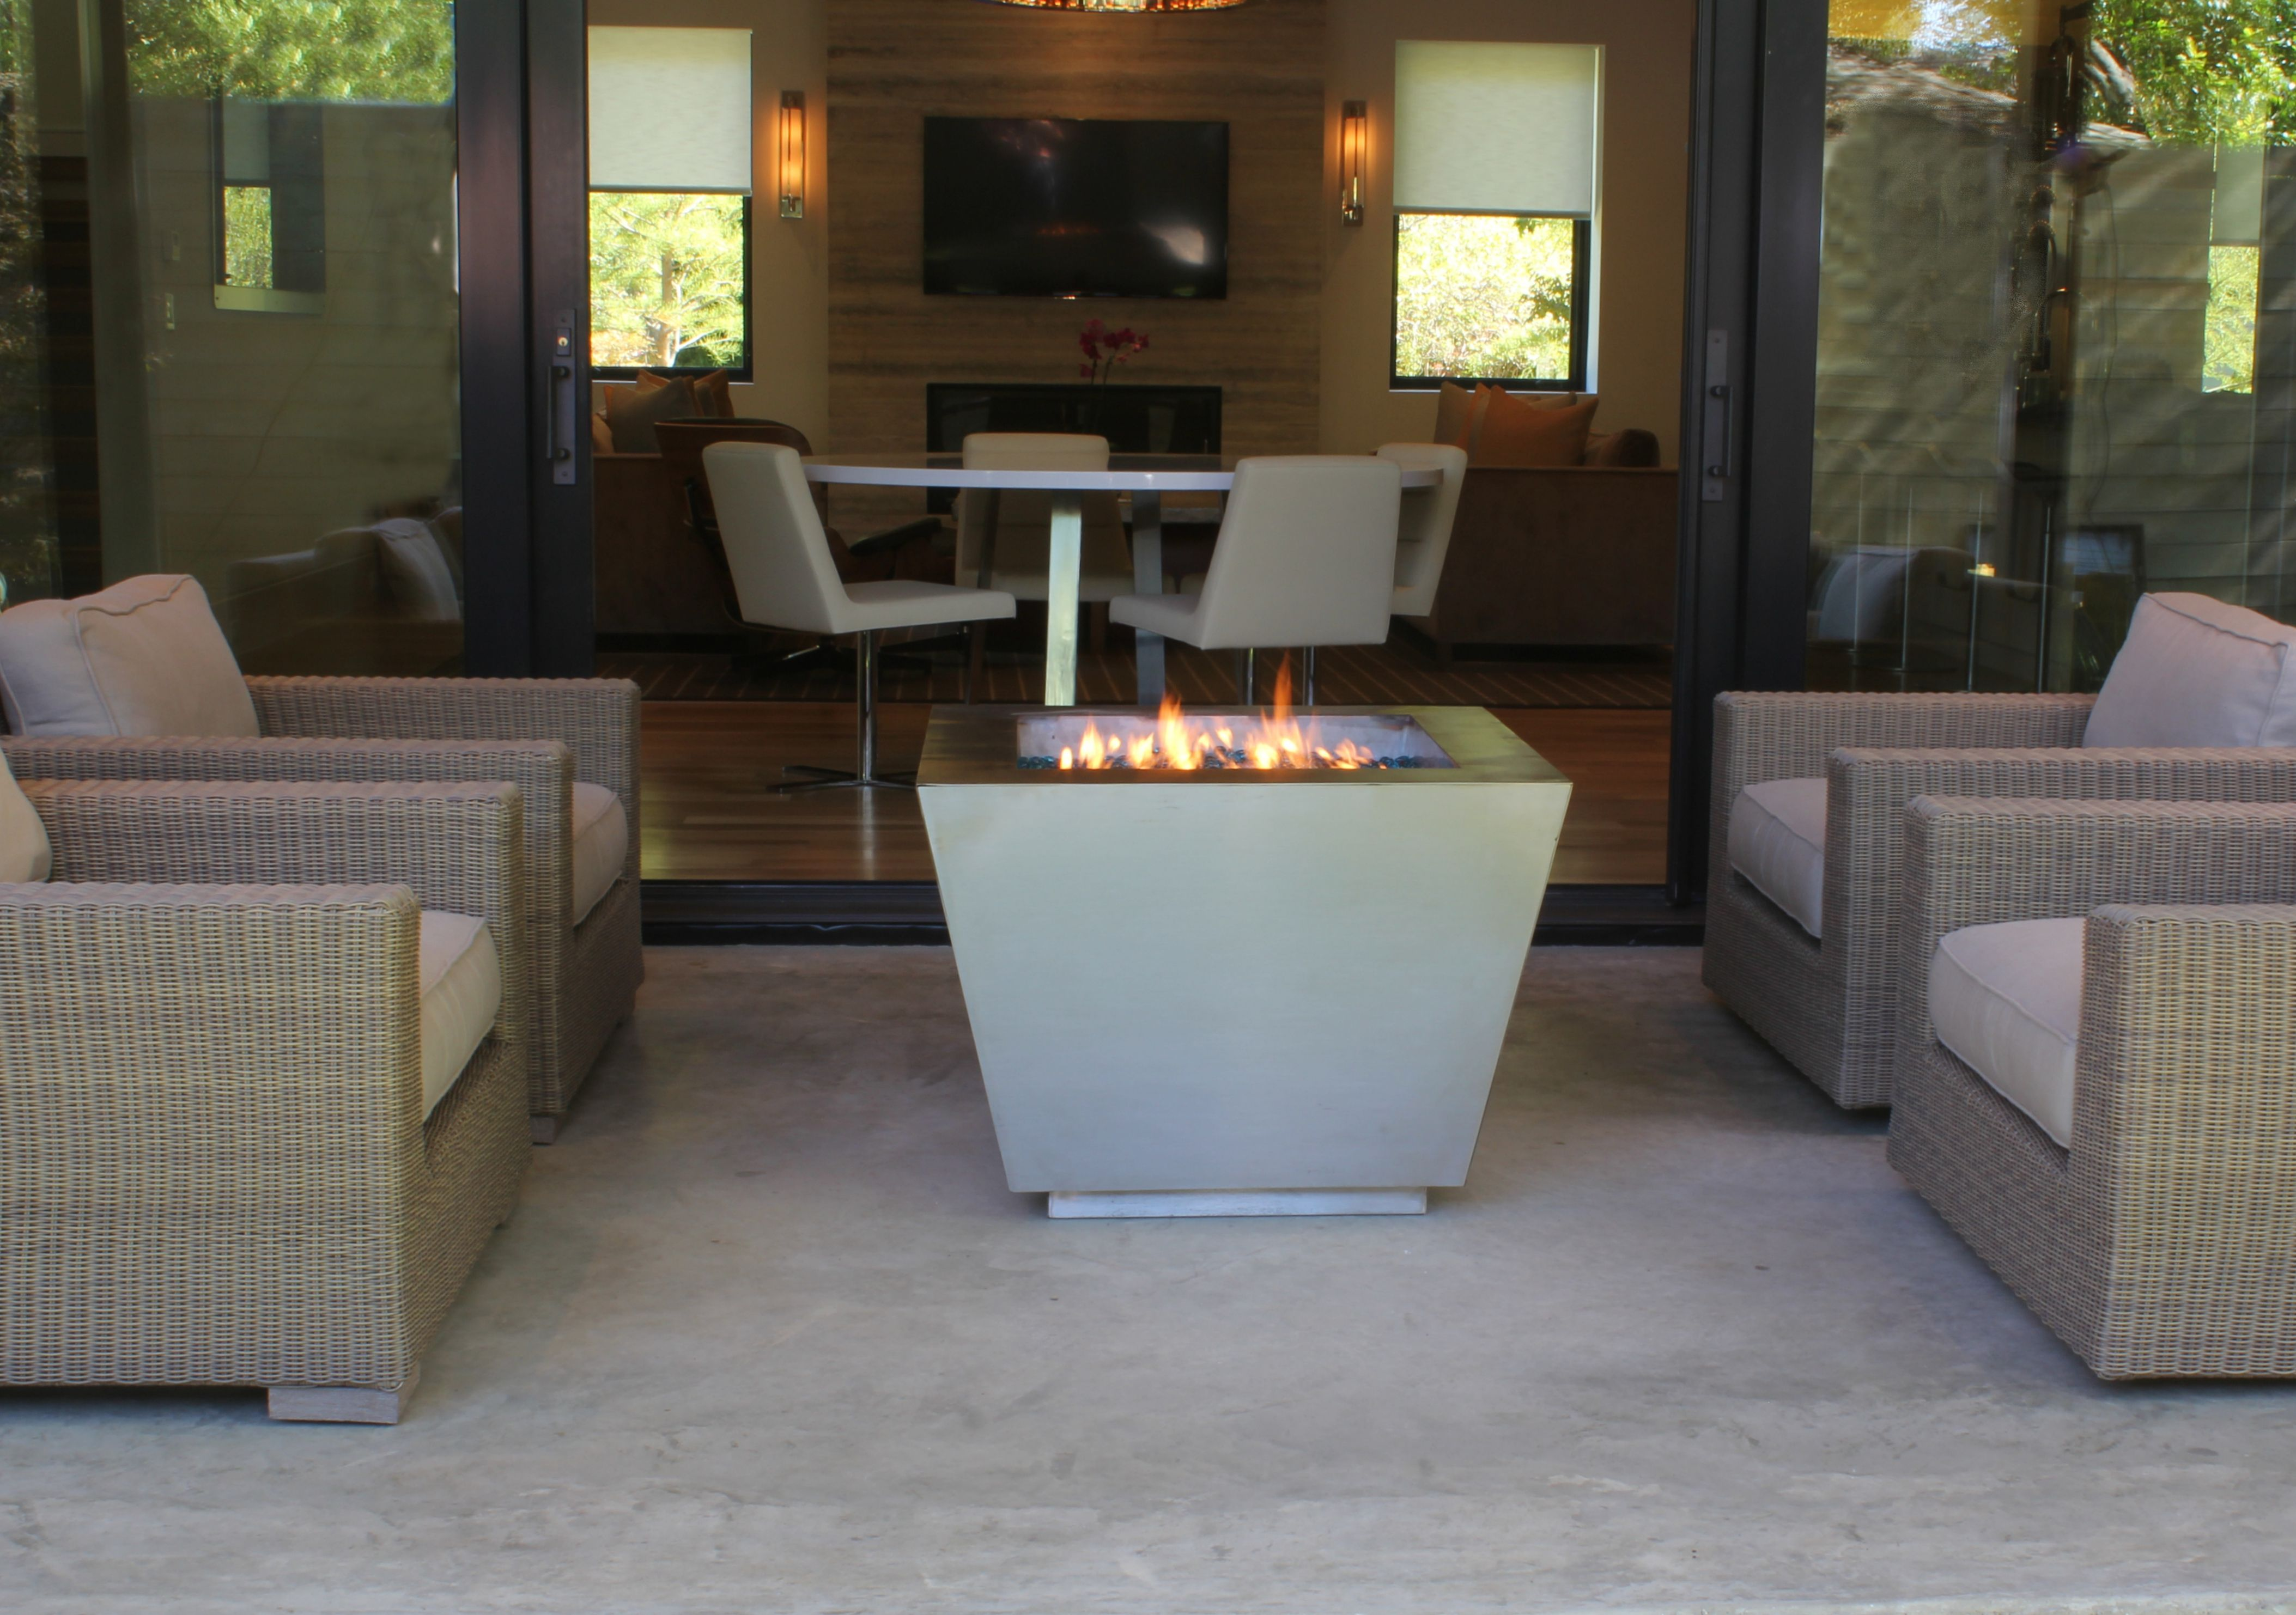 33 pyramid stainless steel fire pit shown as a glass media